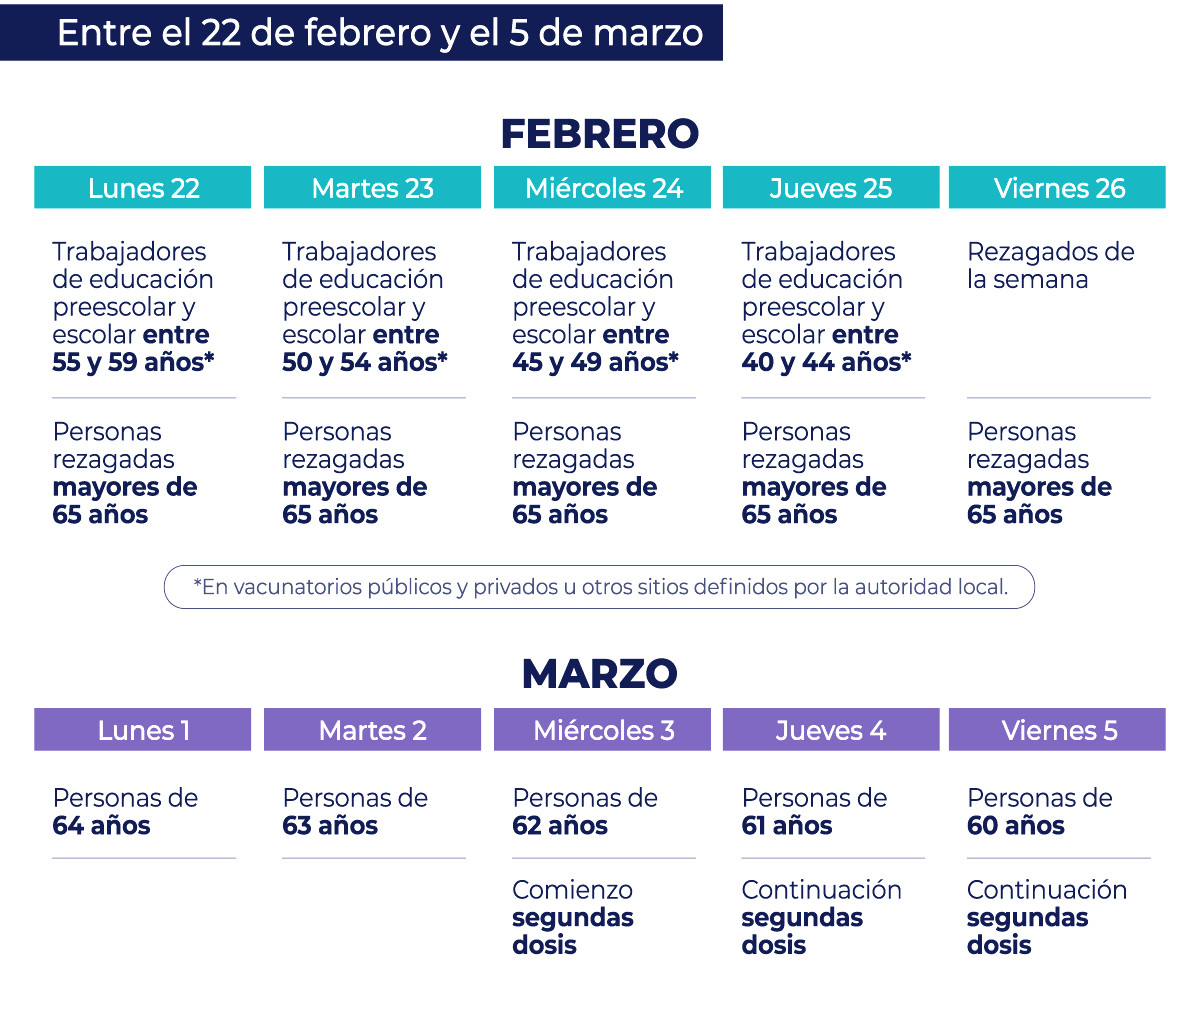 calendario vacunas22feb